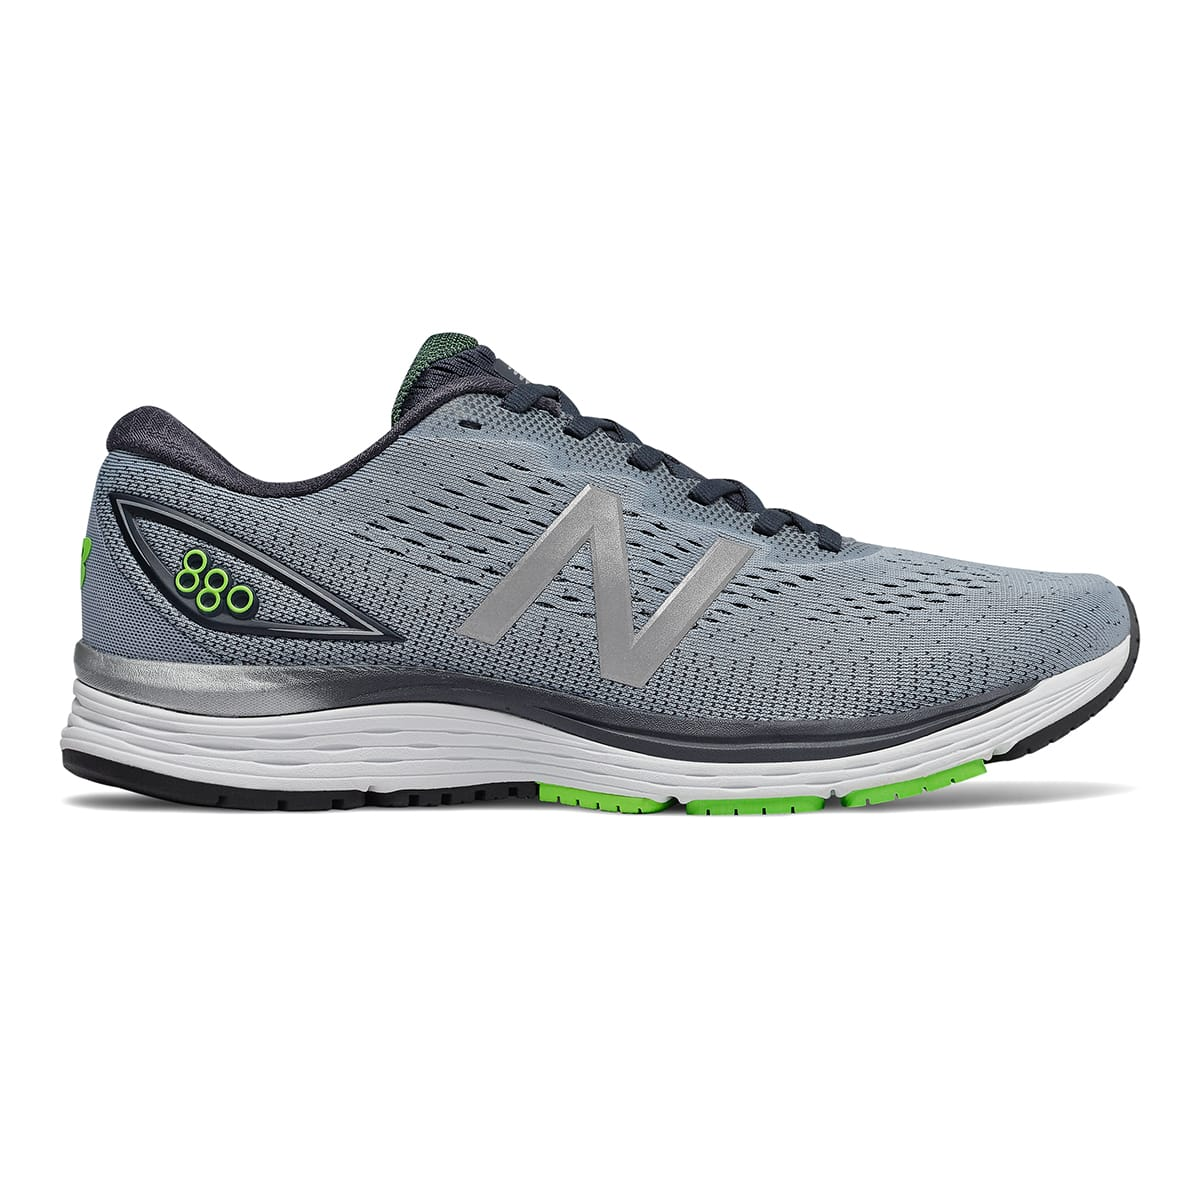 New Balance Running Shoes: Men's or Women's 860v9 $59.98 + Free Shipping